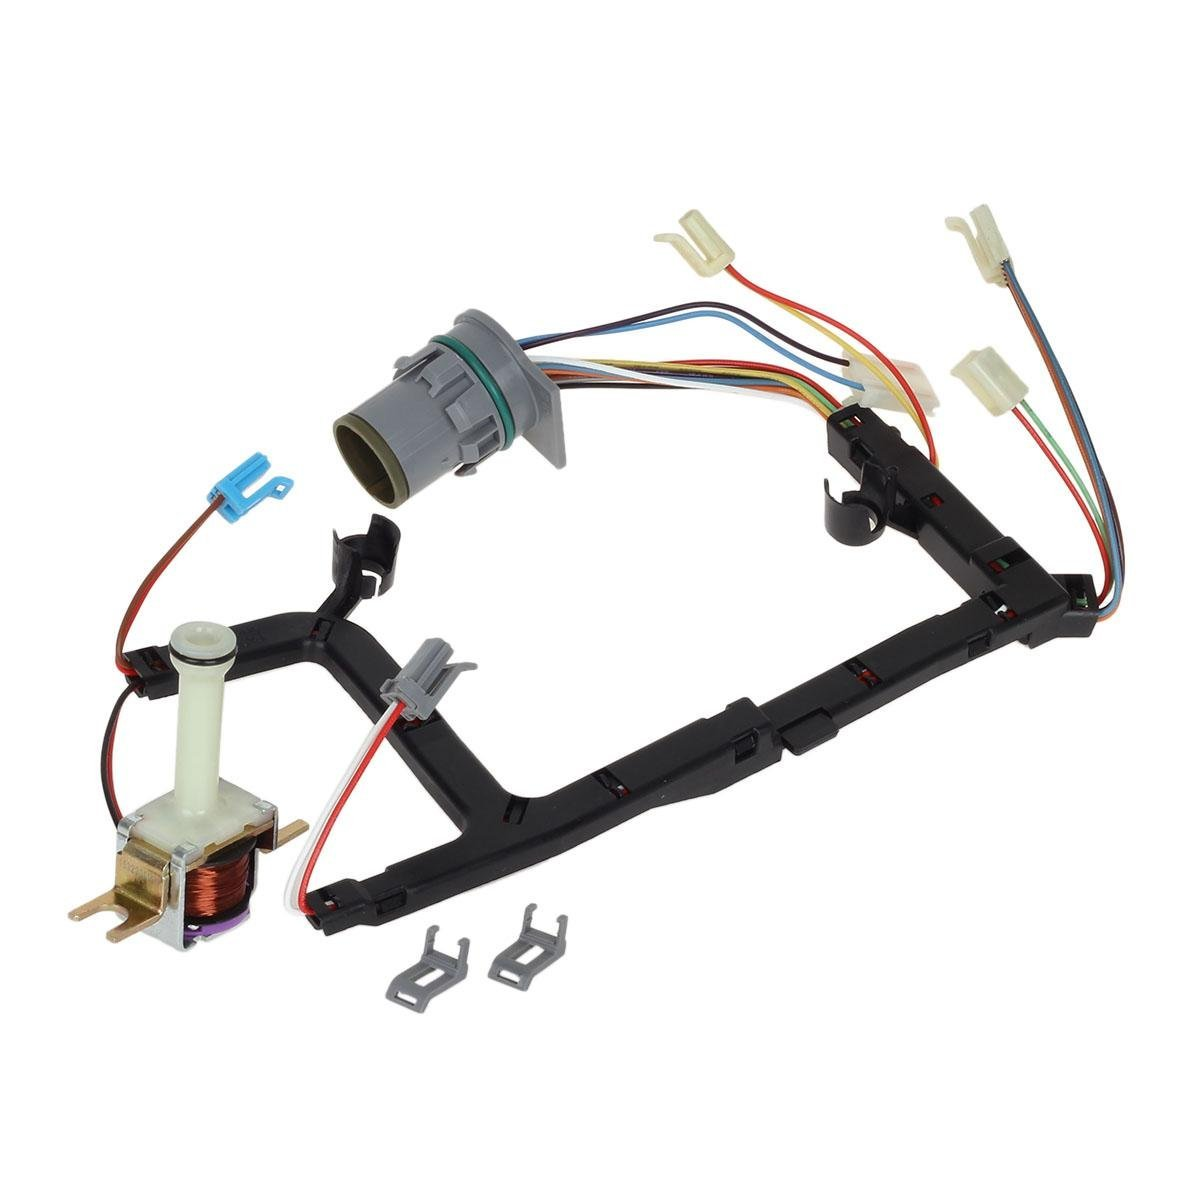 universal 4l60e transmission solenoid internal wire harness with tcc for 1993 2002 gm [ 1200 x 1200 Pixel ]